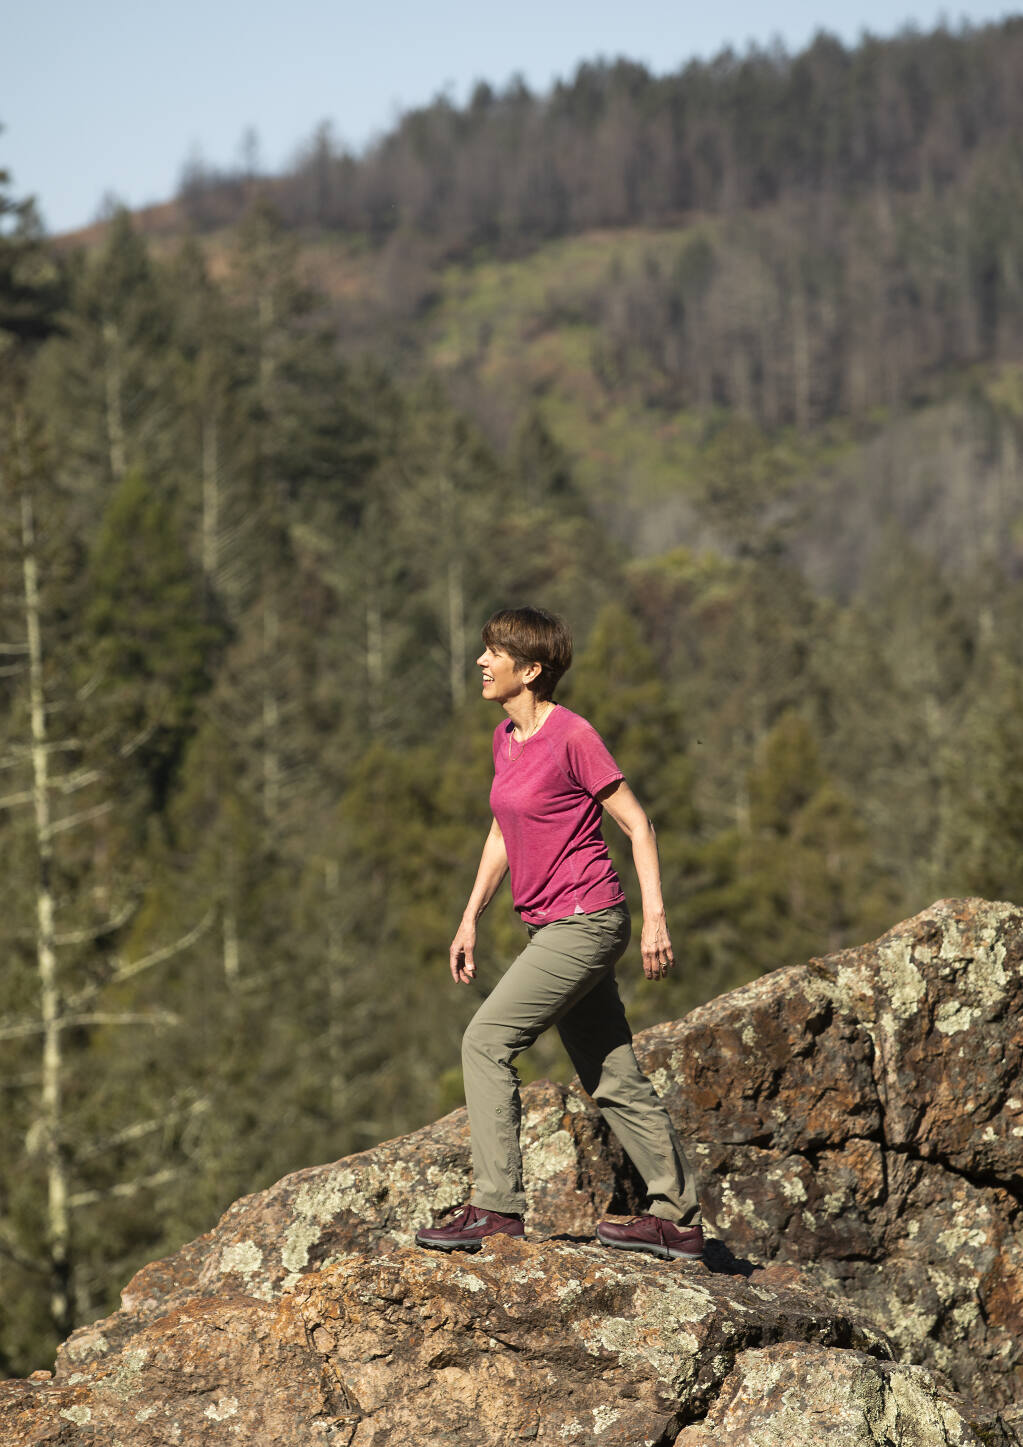 Inga Aksamit of Kenwood has traveled the world and most of California in search of great walks like Sugarloaf State Park on Friday, April 2, 2021.   (John Burgess / The Press Democrat)